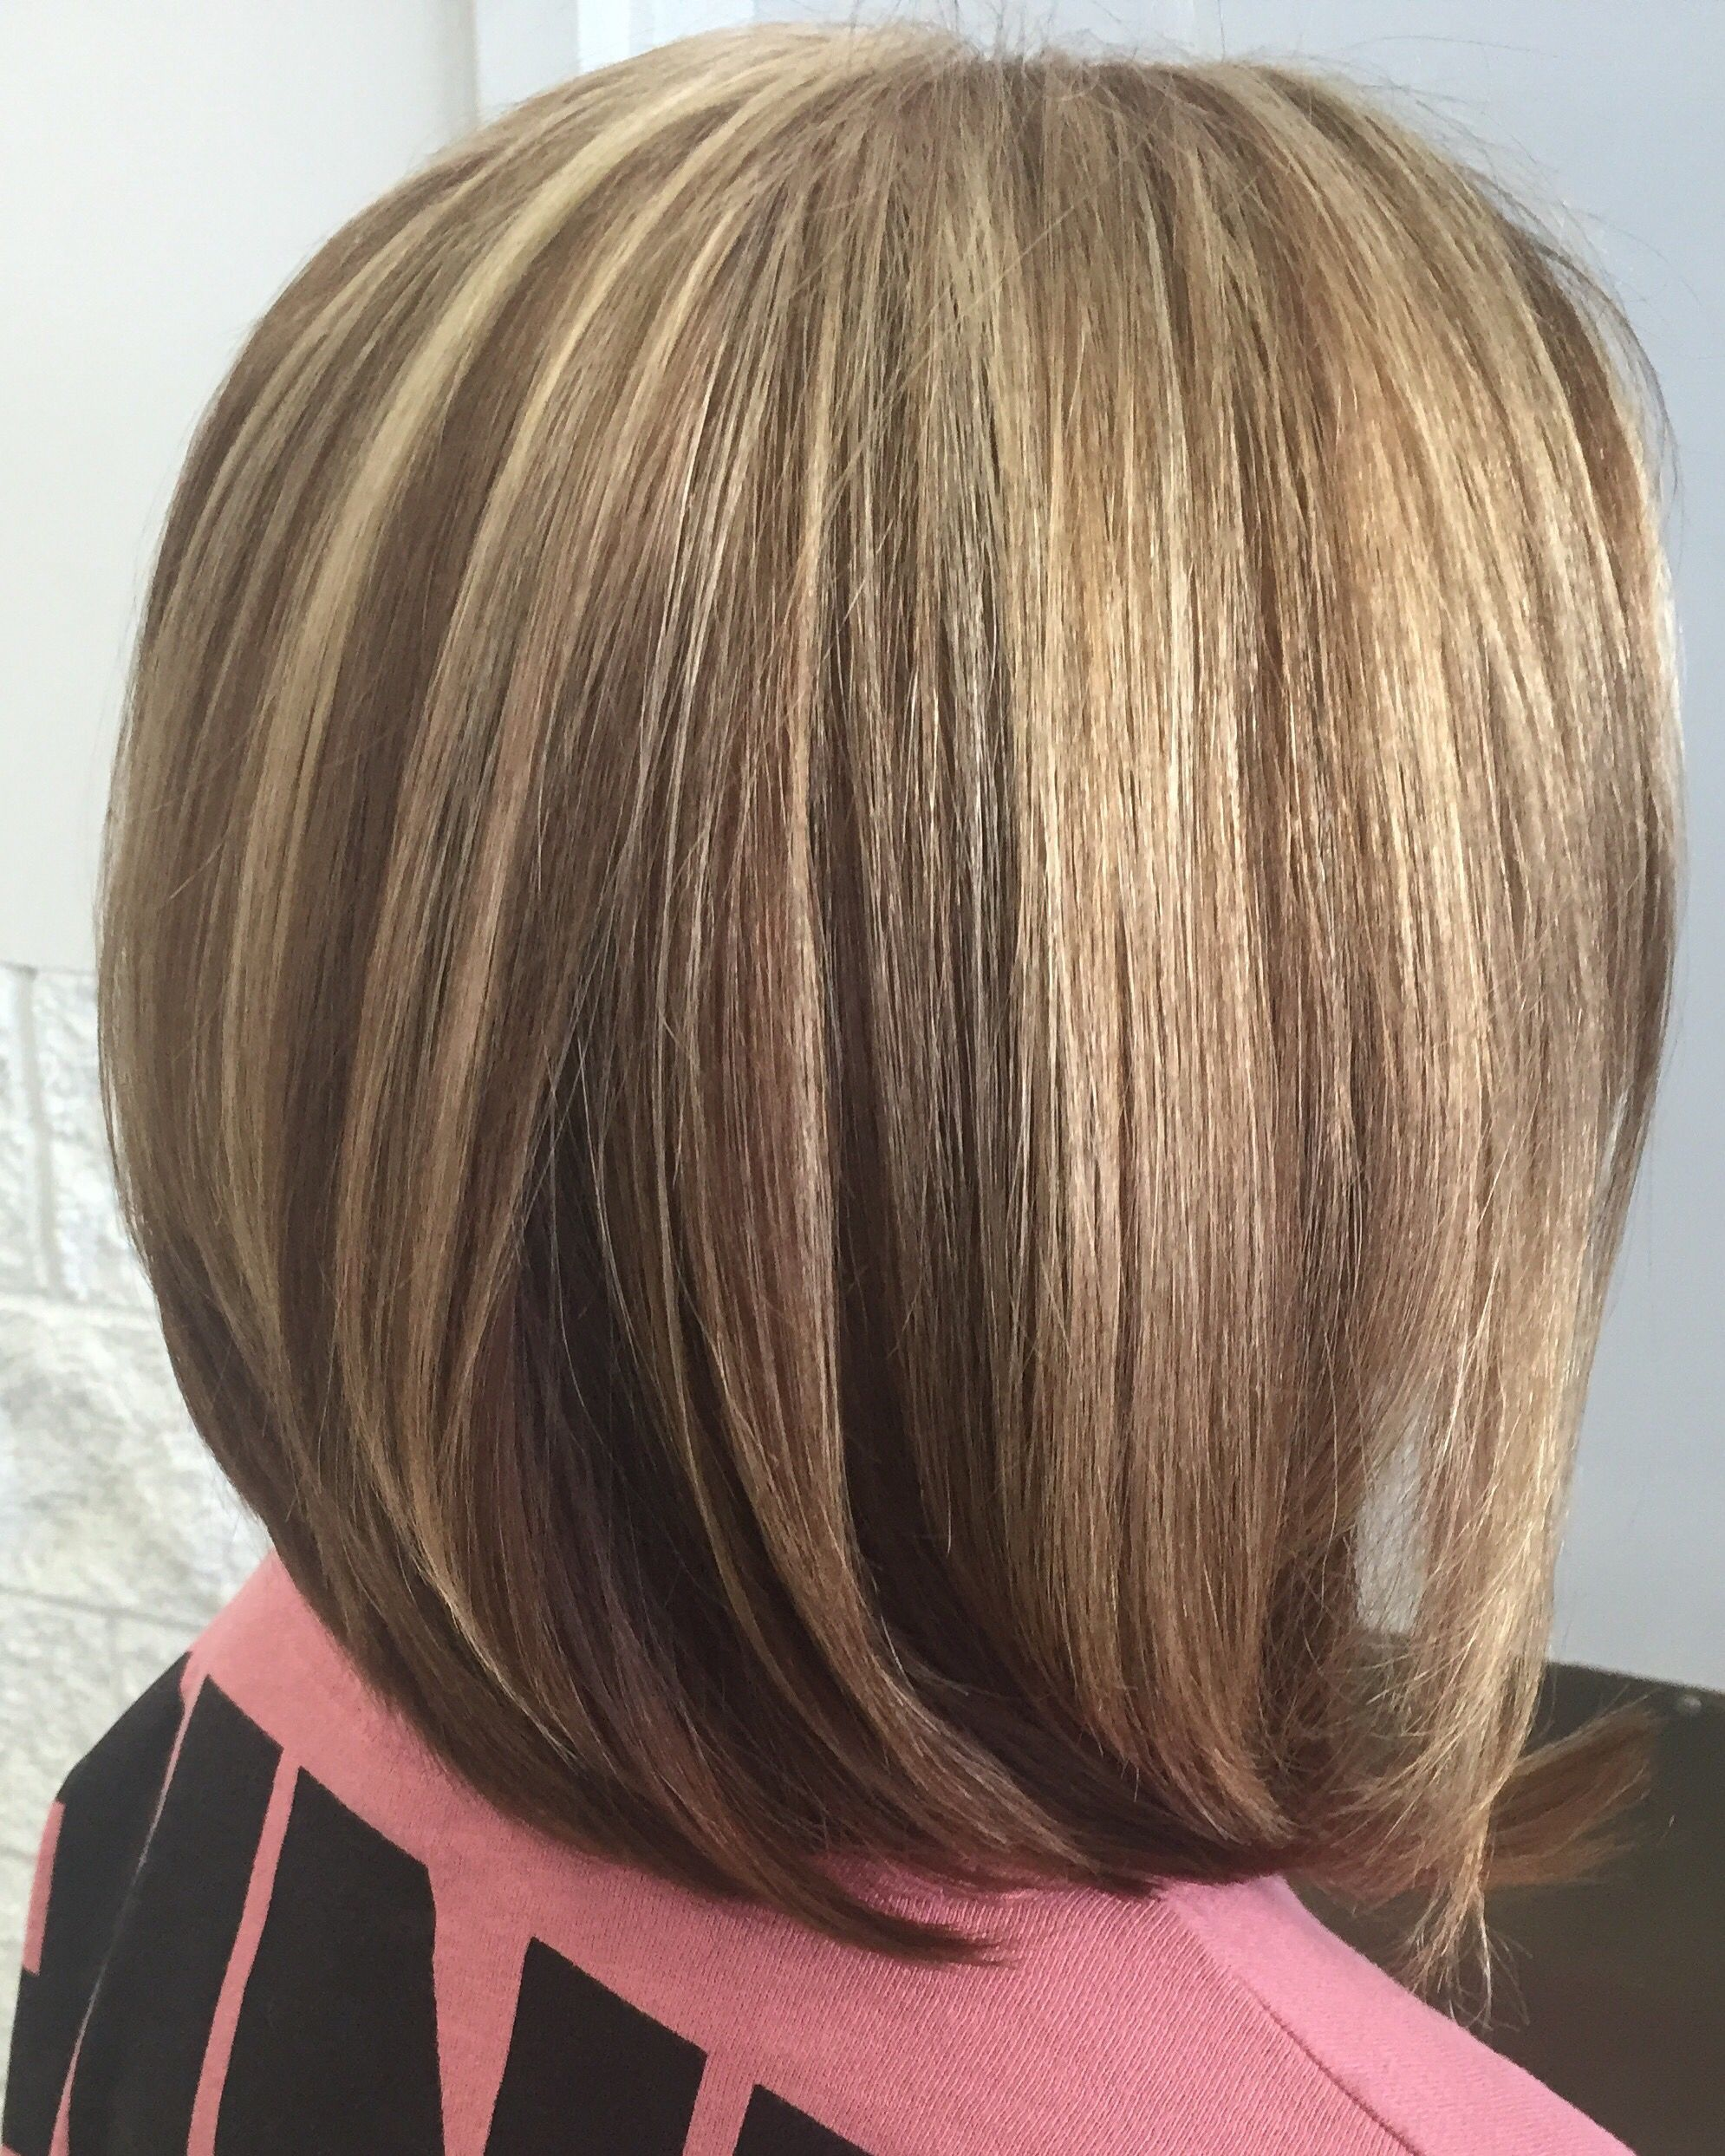 Beige blonde highlights and lowlights bob haircut | Hairbrained ...